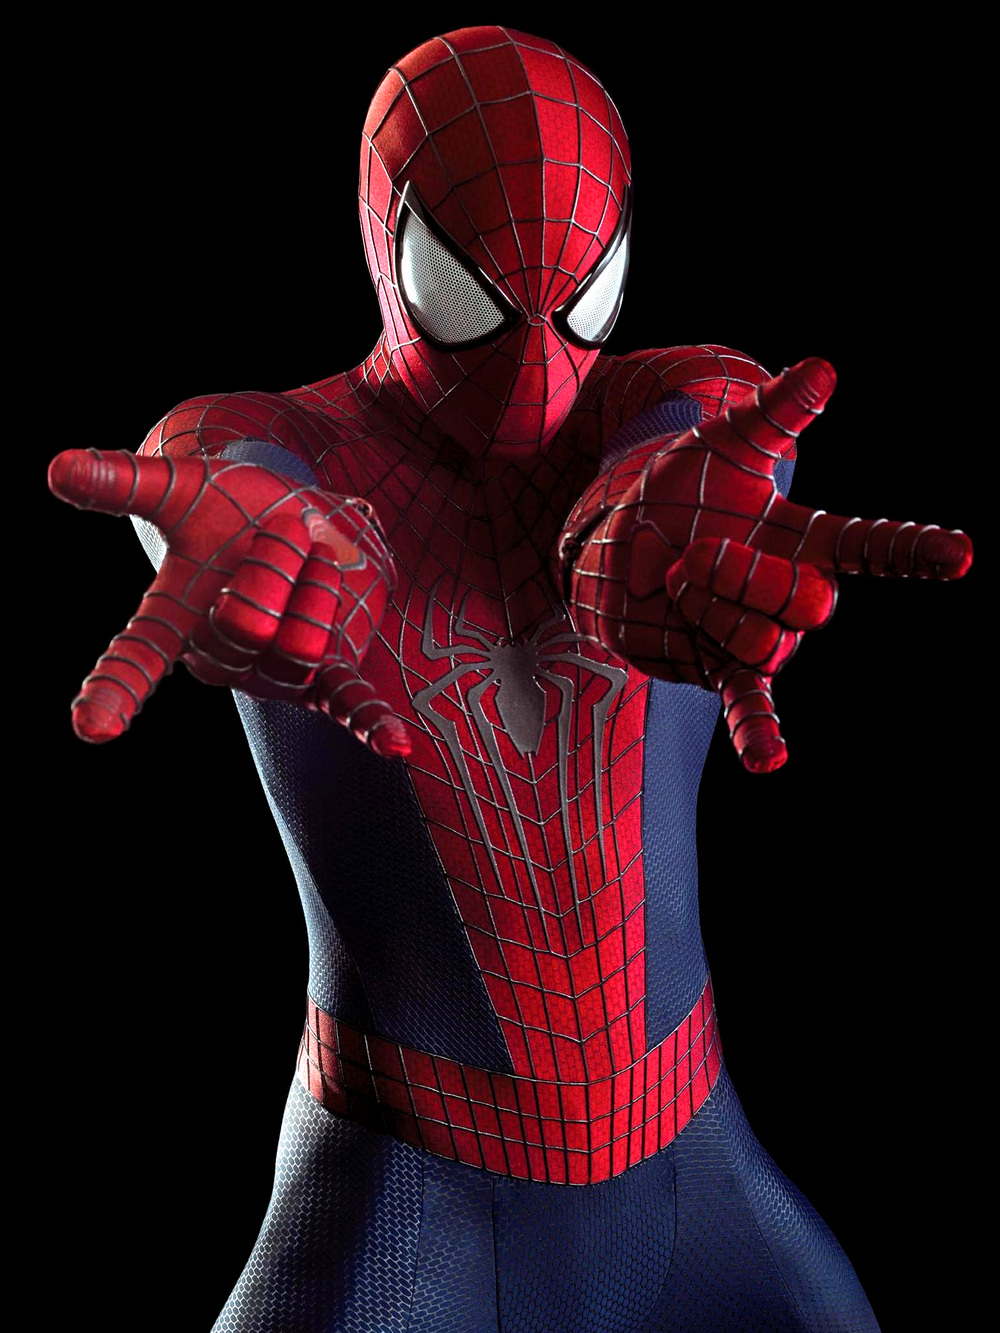 https://lefthandhorror.files.wordpress.com/2013/12/the-amazing-spider-man-2-new-details-on-spideys-suit.jpg